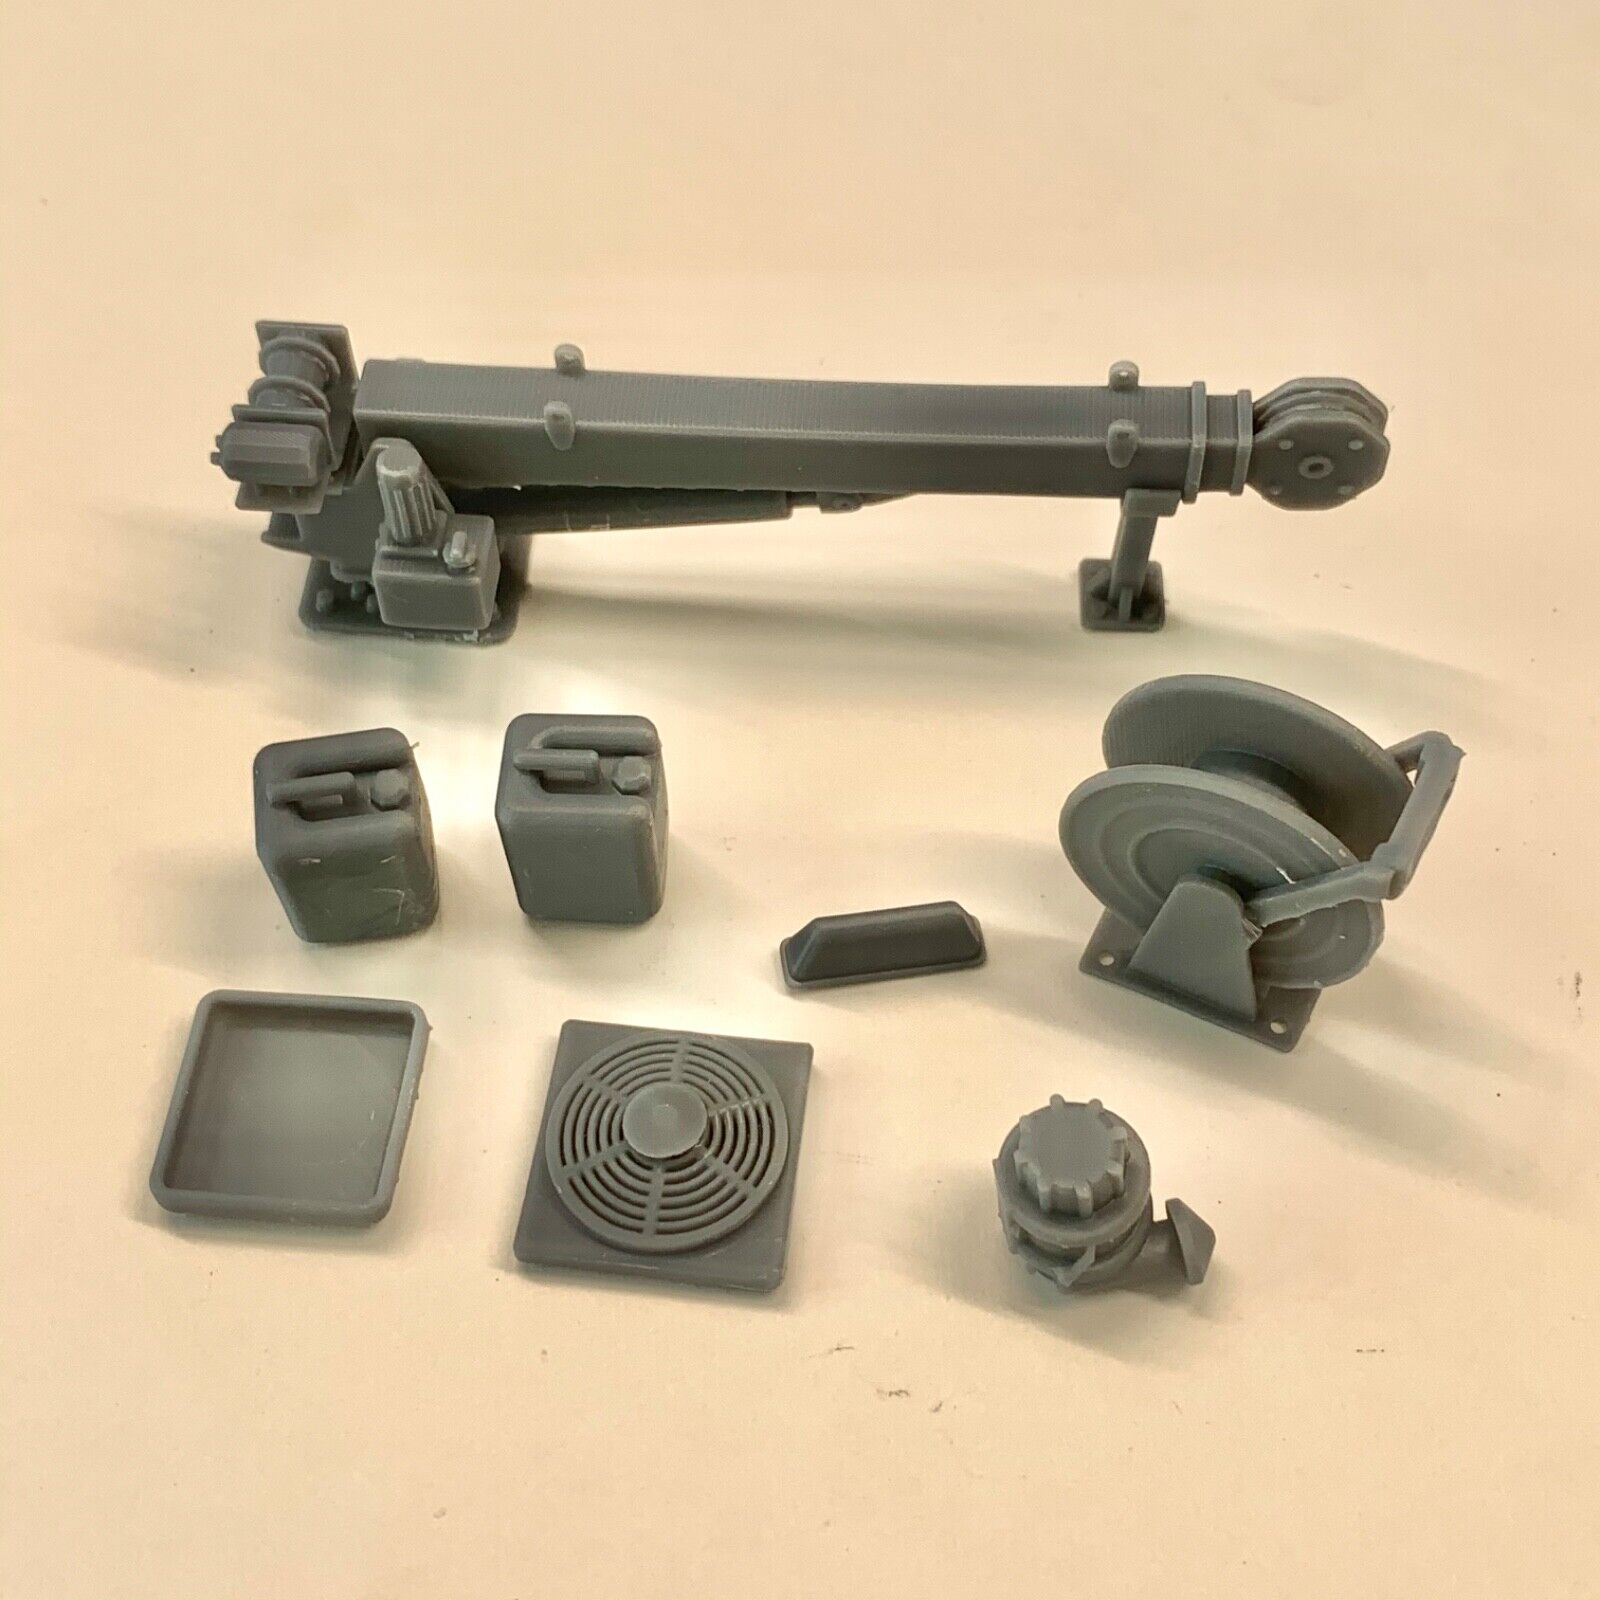 Resin Crane & Accessories Set for Utility Service Bed Truck